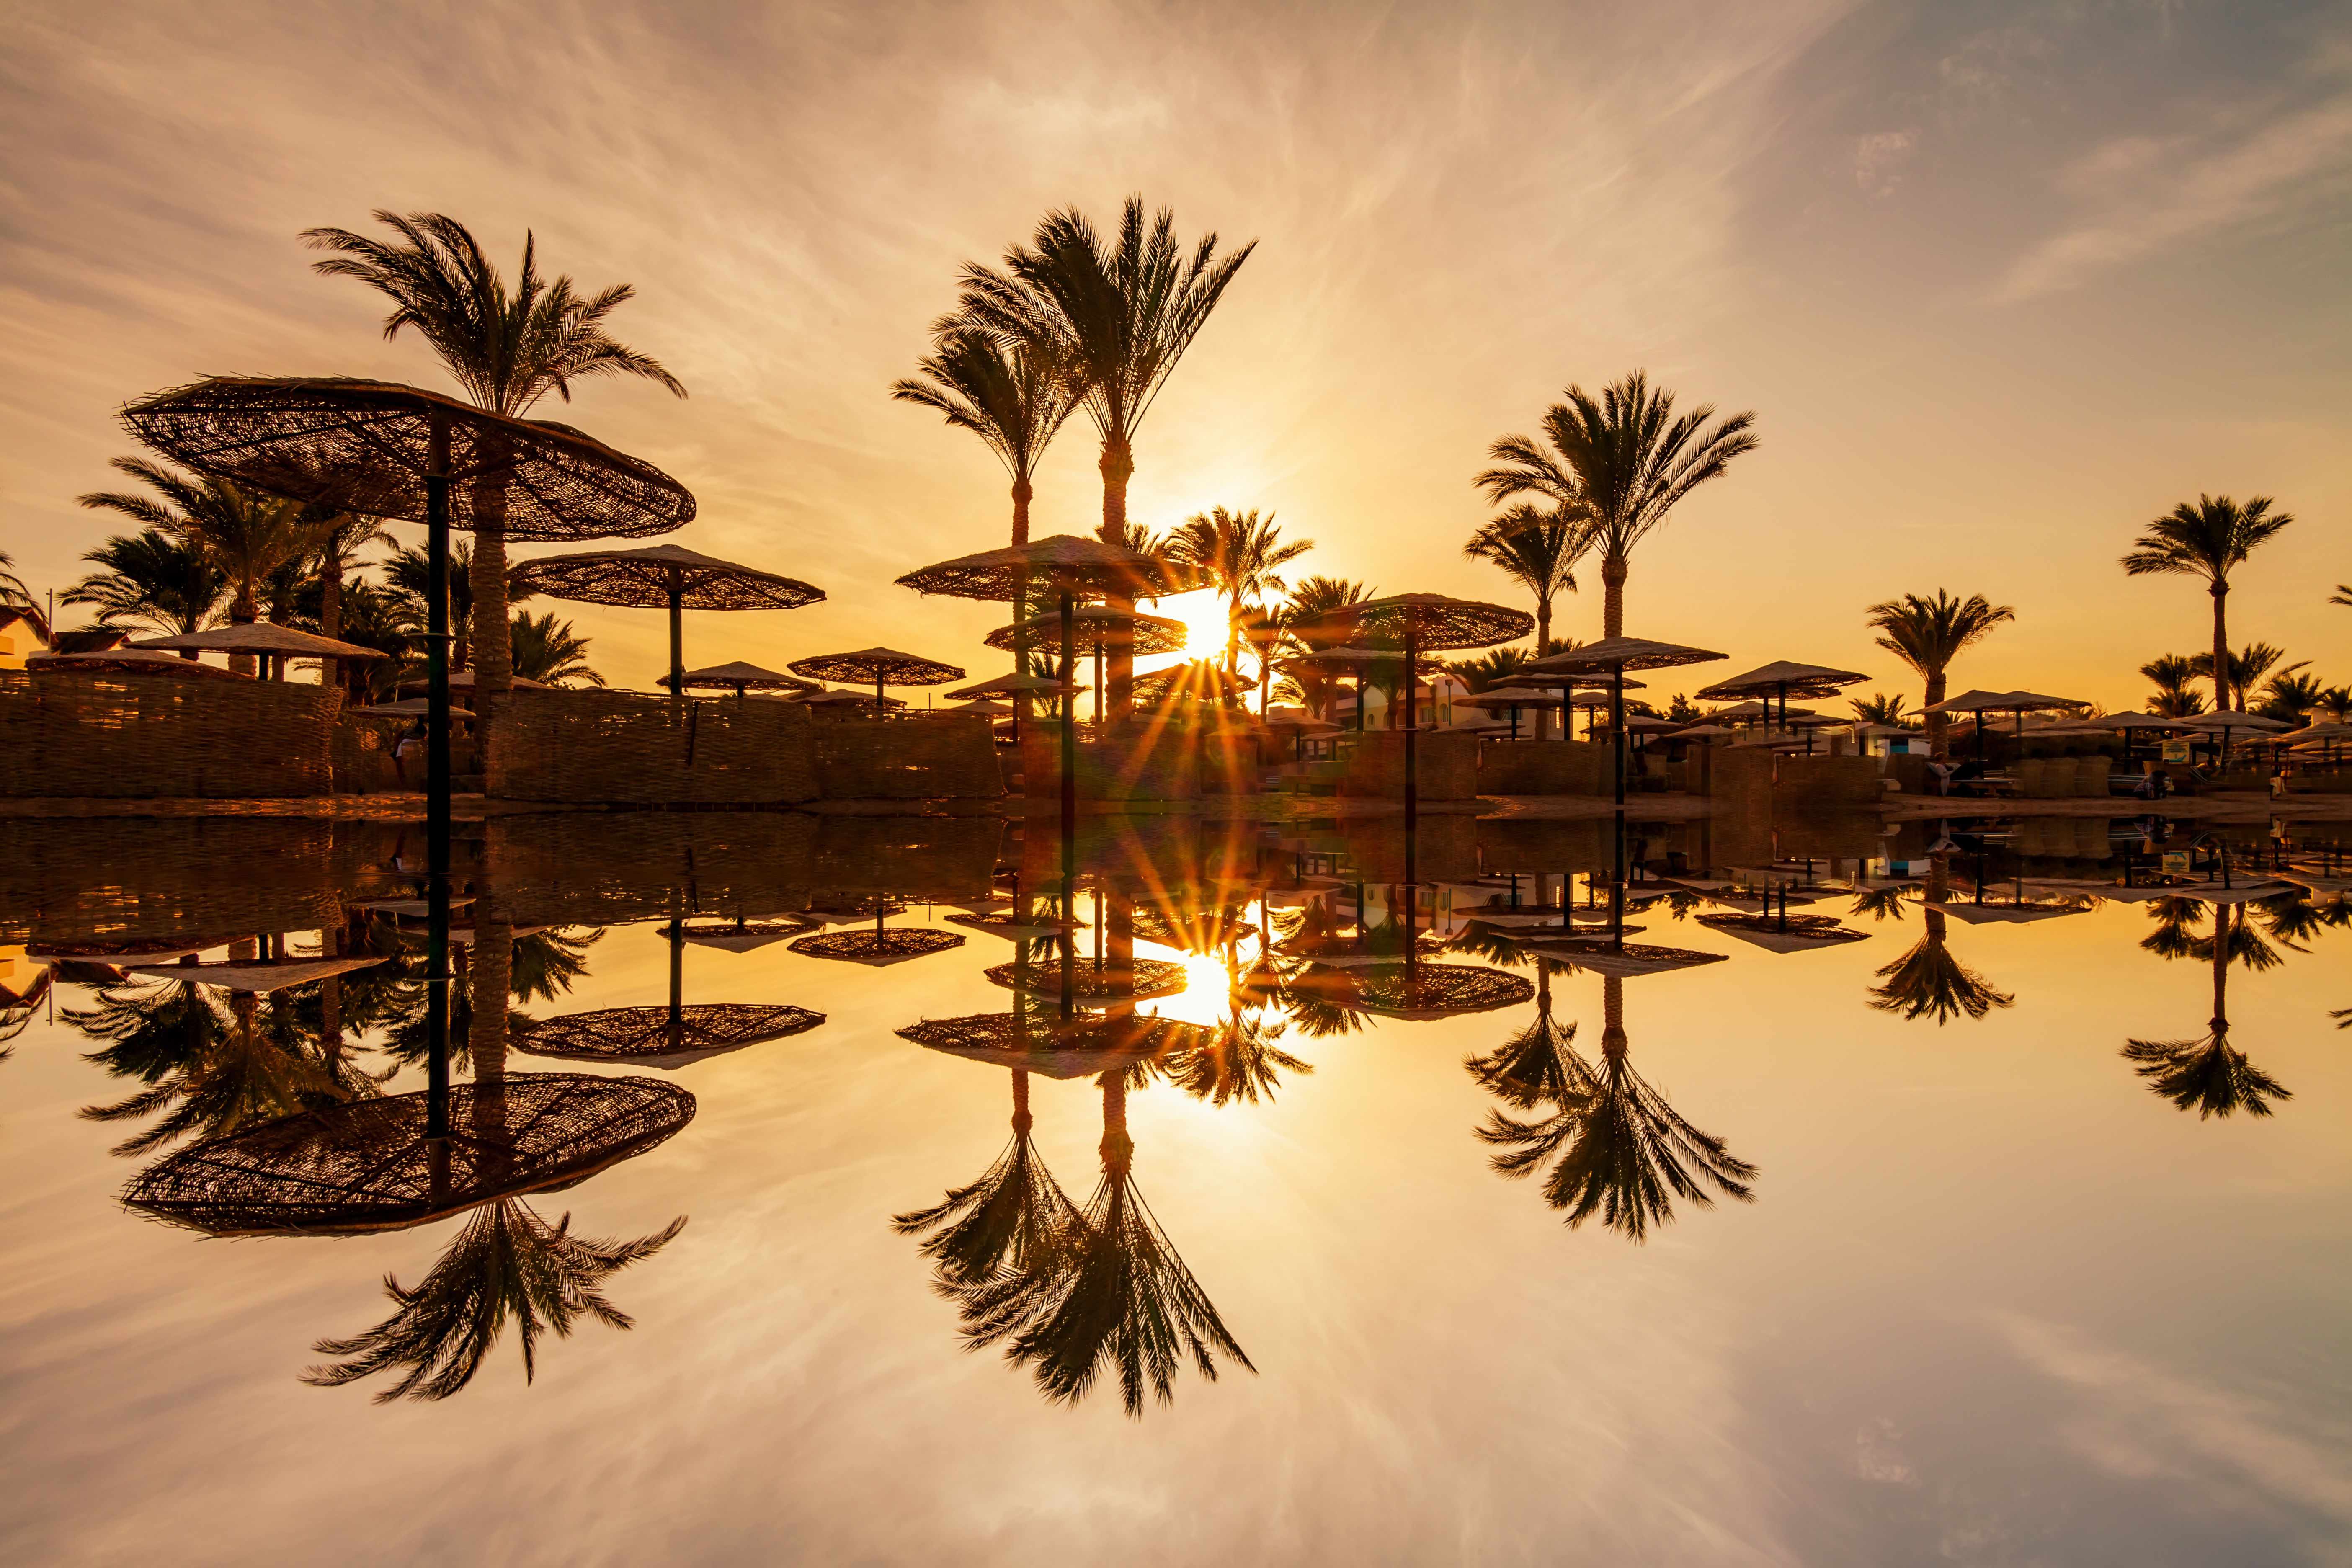 Sunset through palm trees over the Red Sea in Hurghada